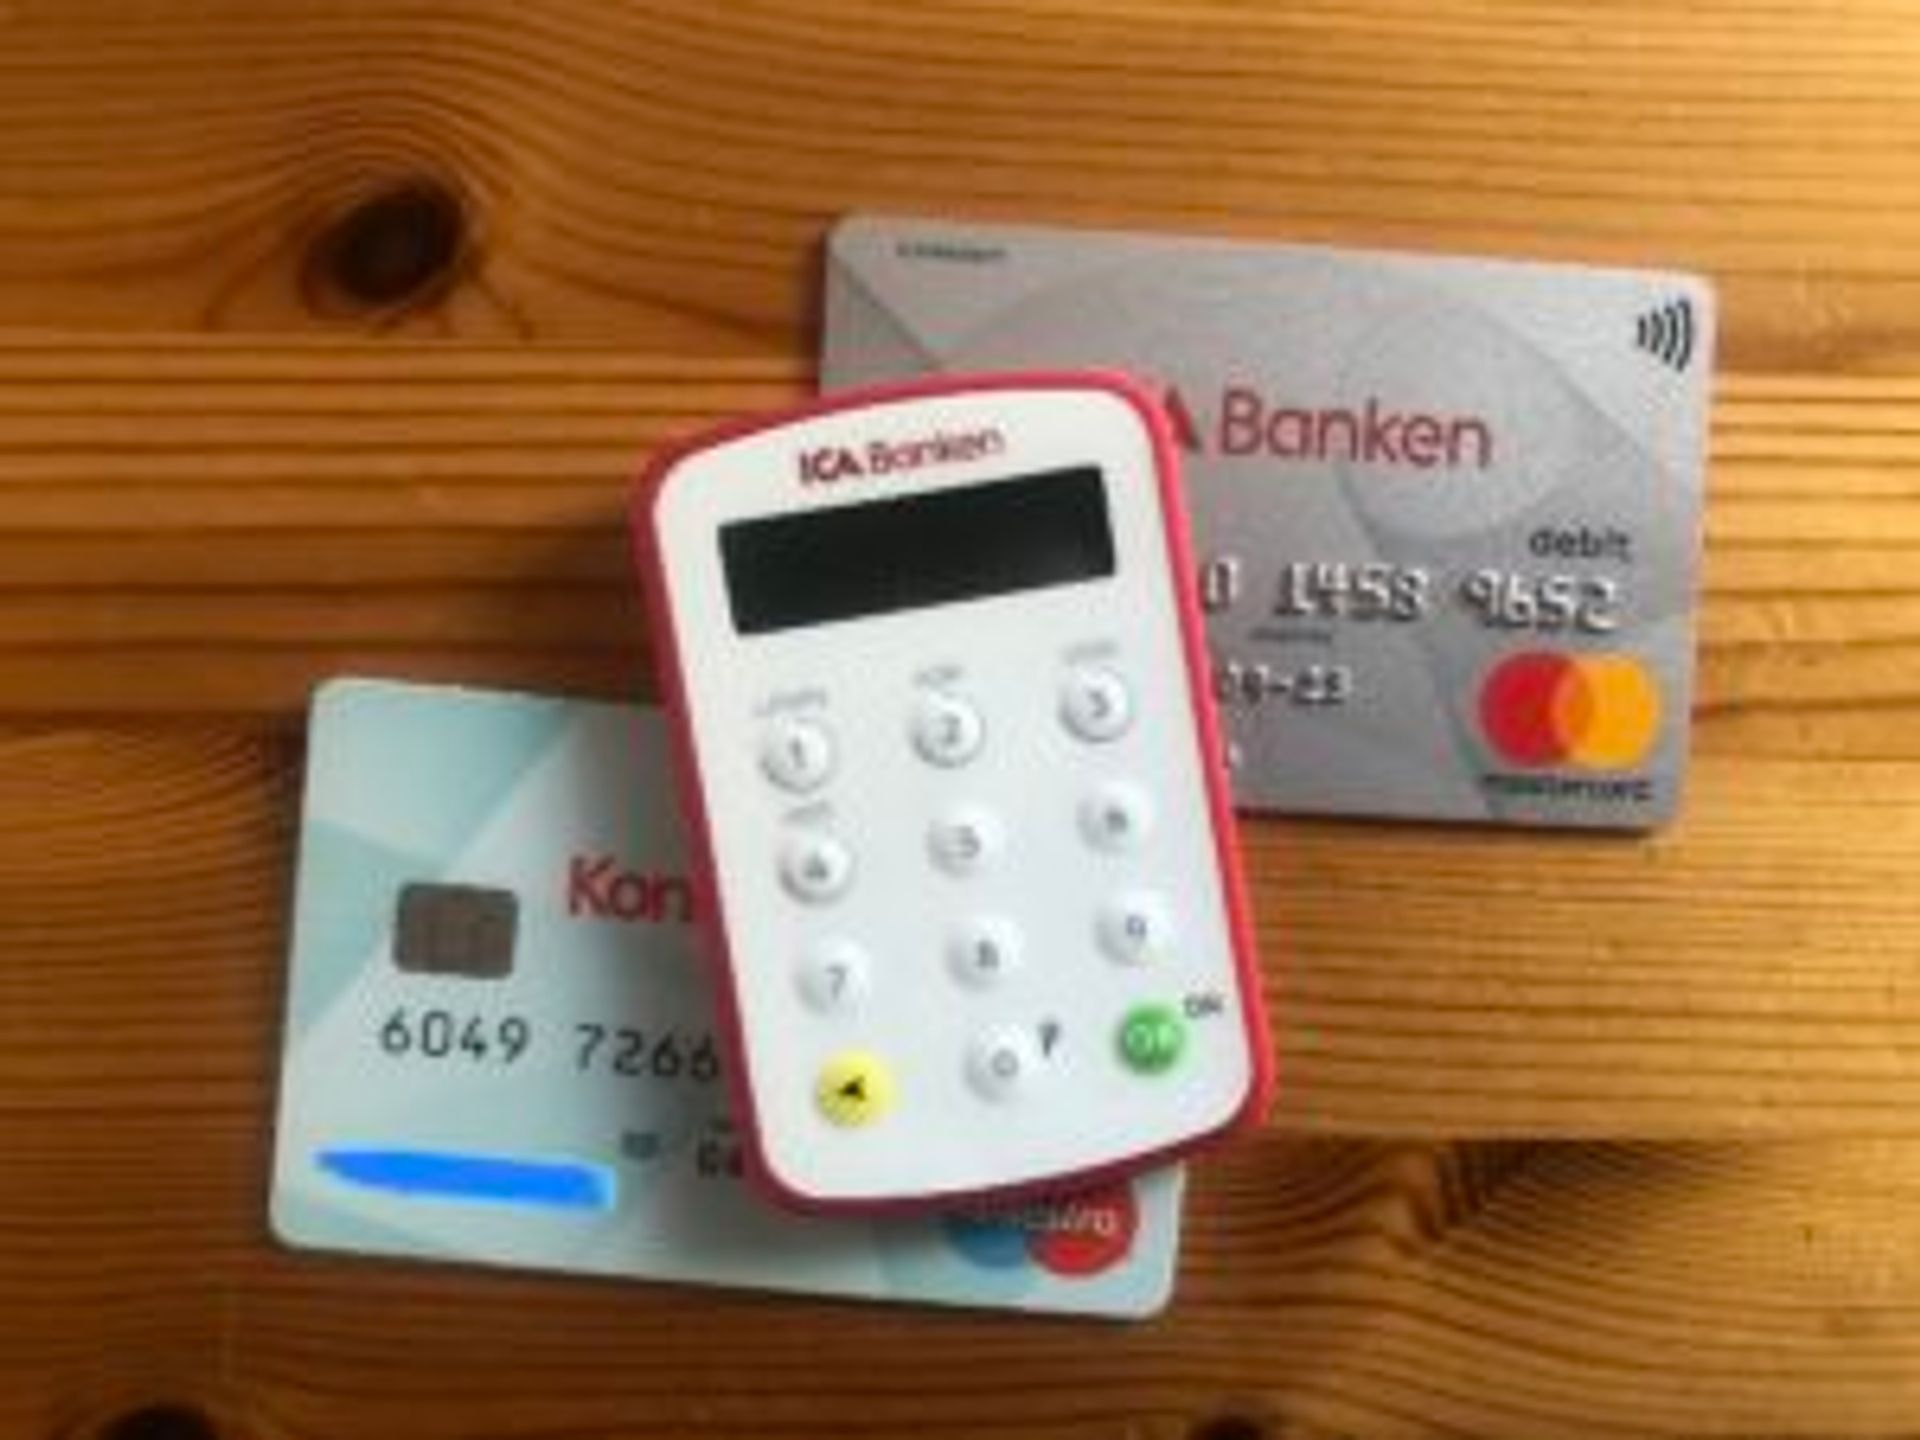 Bank cards.